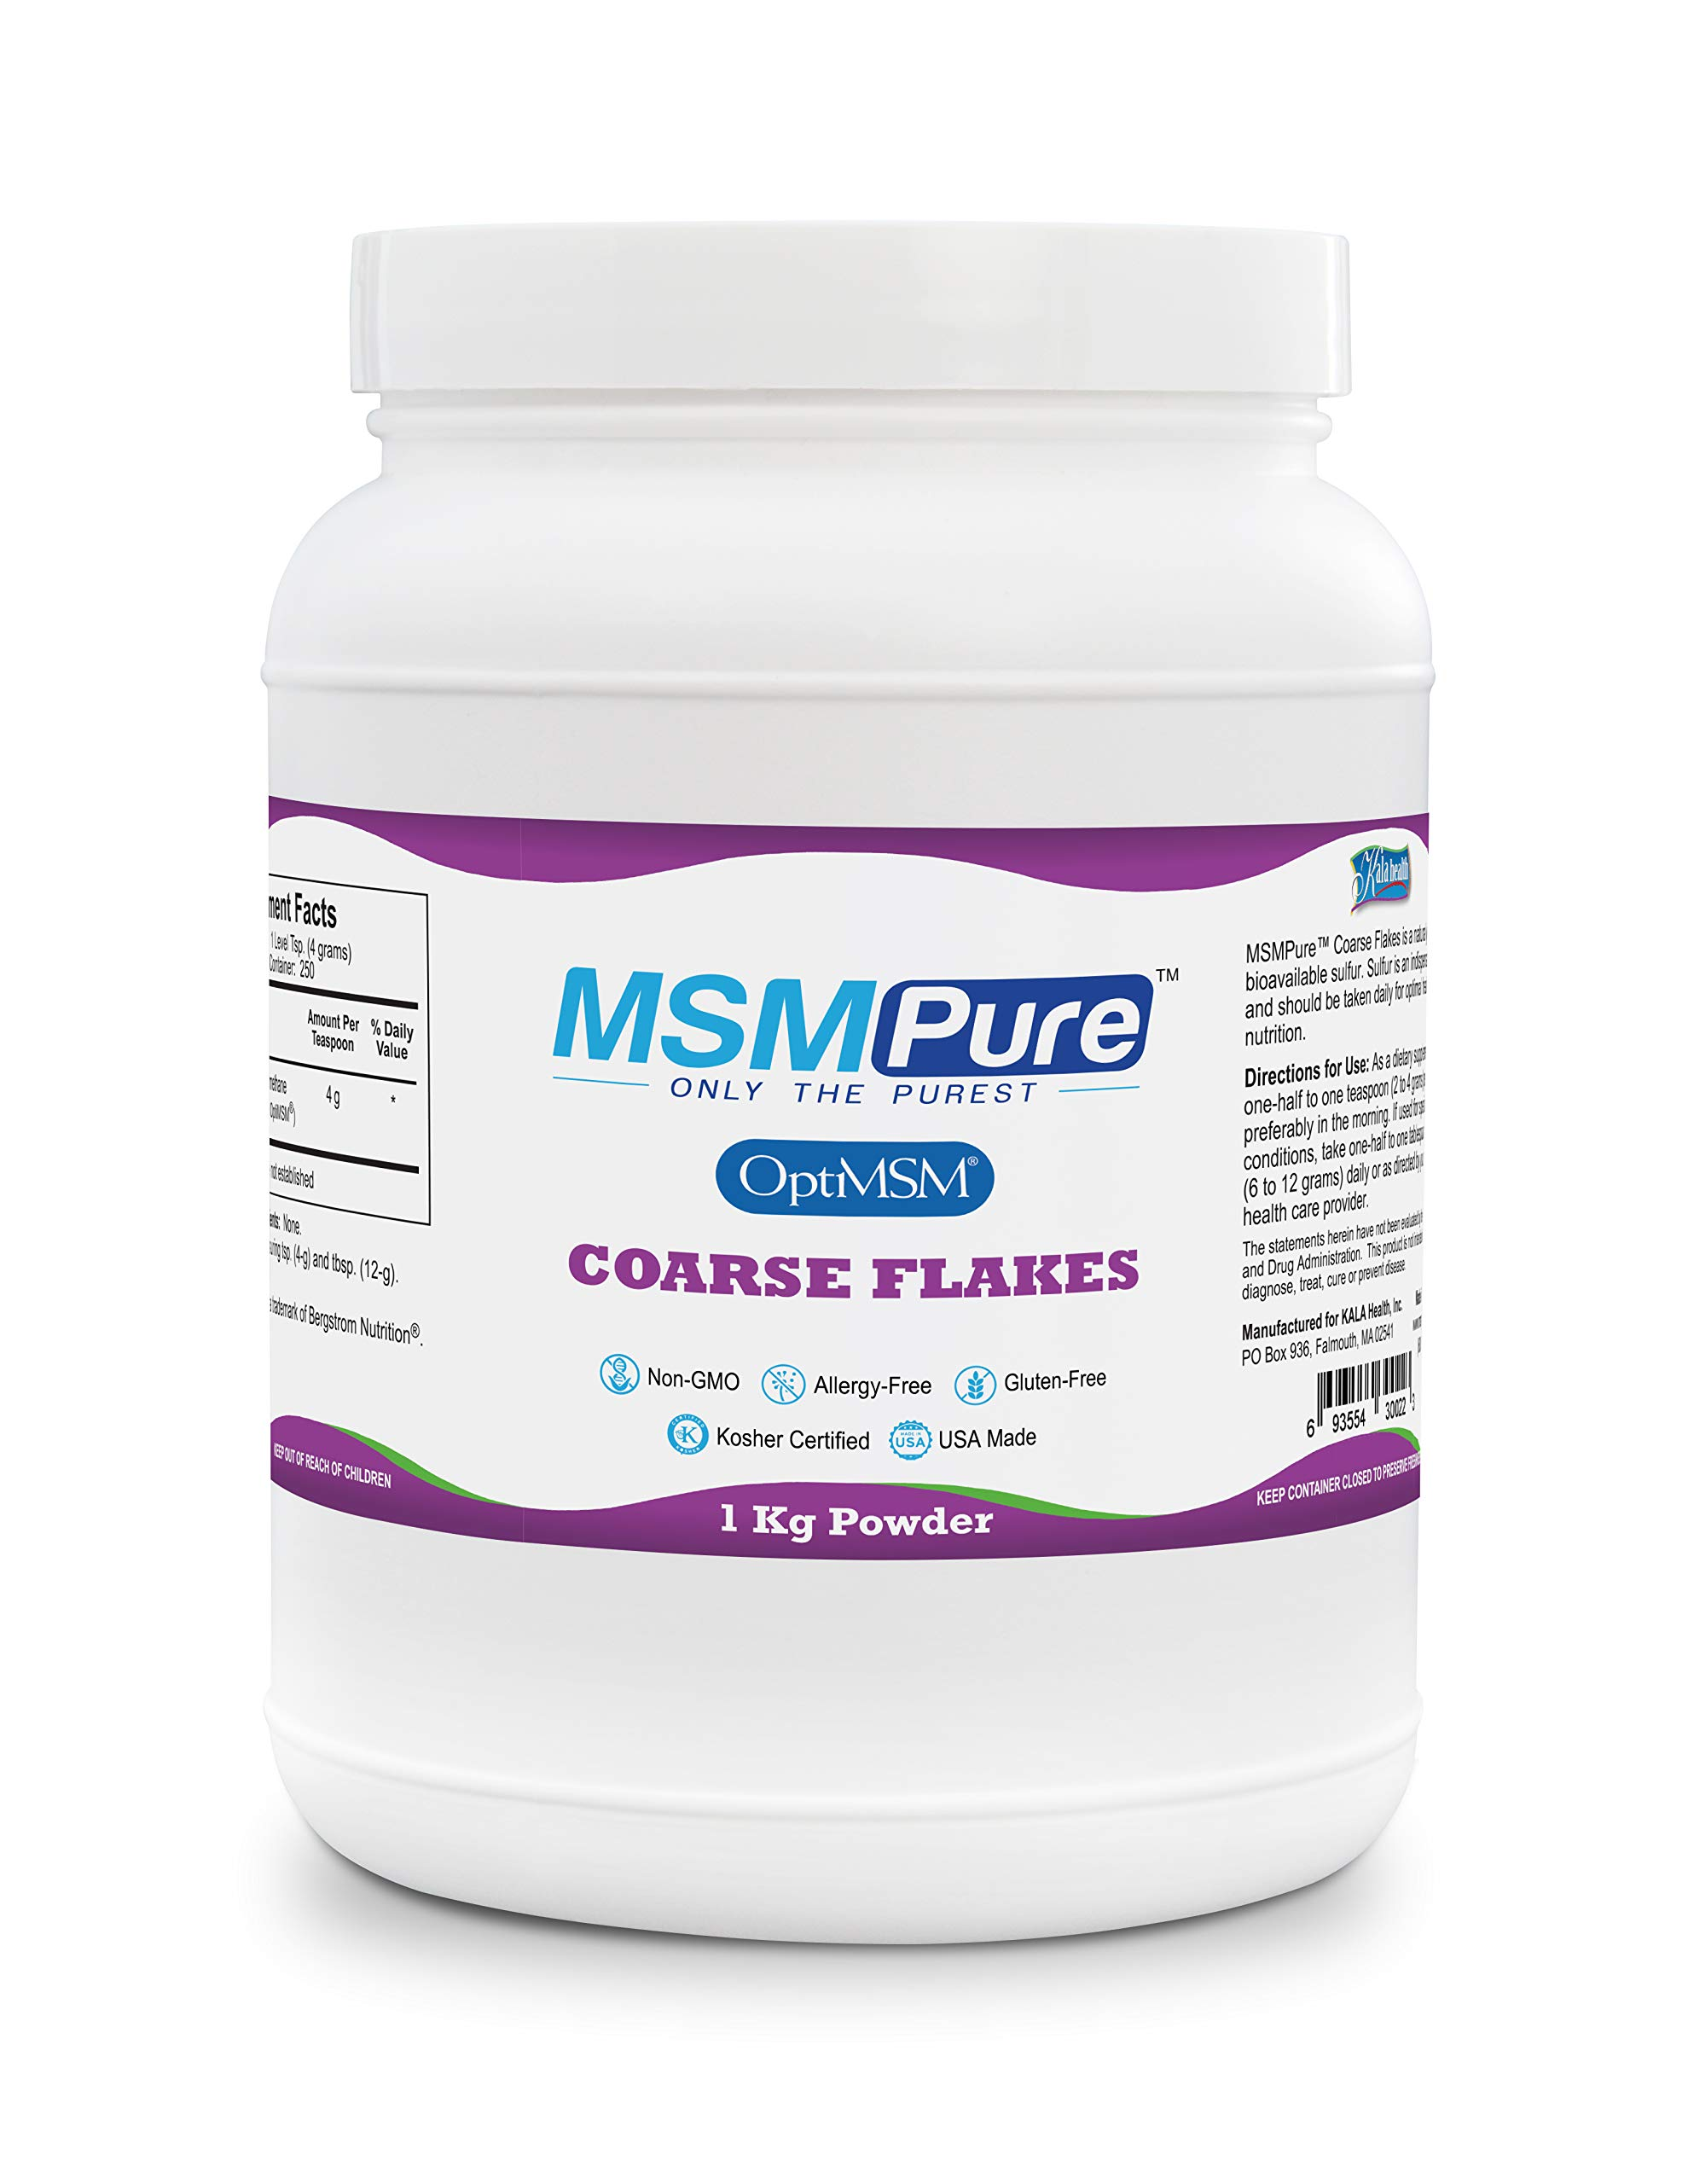 Kala Health MSMPure Coarse Powder Flakes, 2.2 lb, Organic Sulfur Crystals, 99.9% Pure Distilled MSM Supplement, Made in The USA